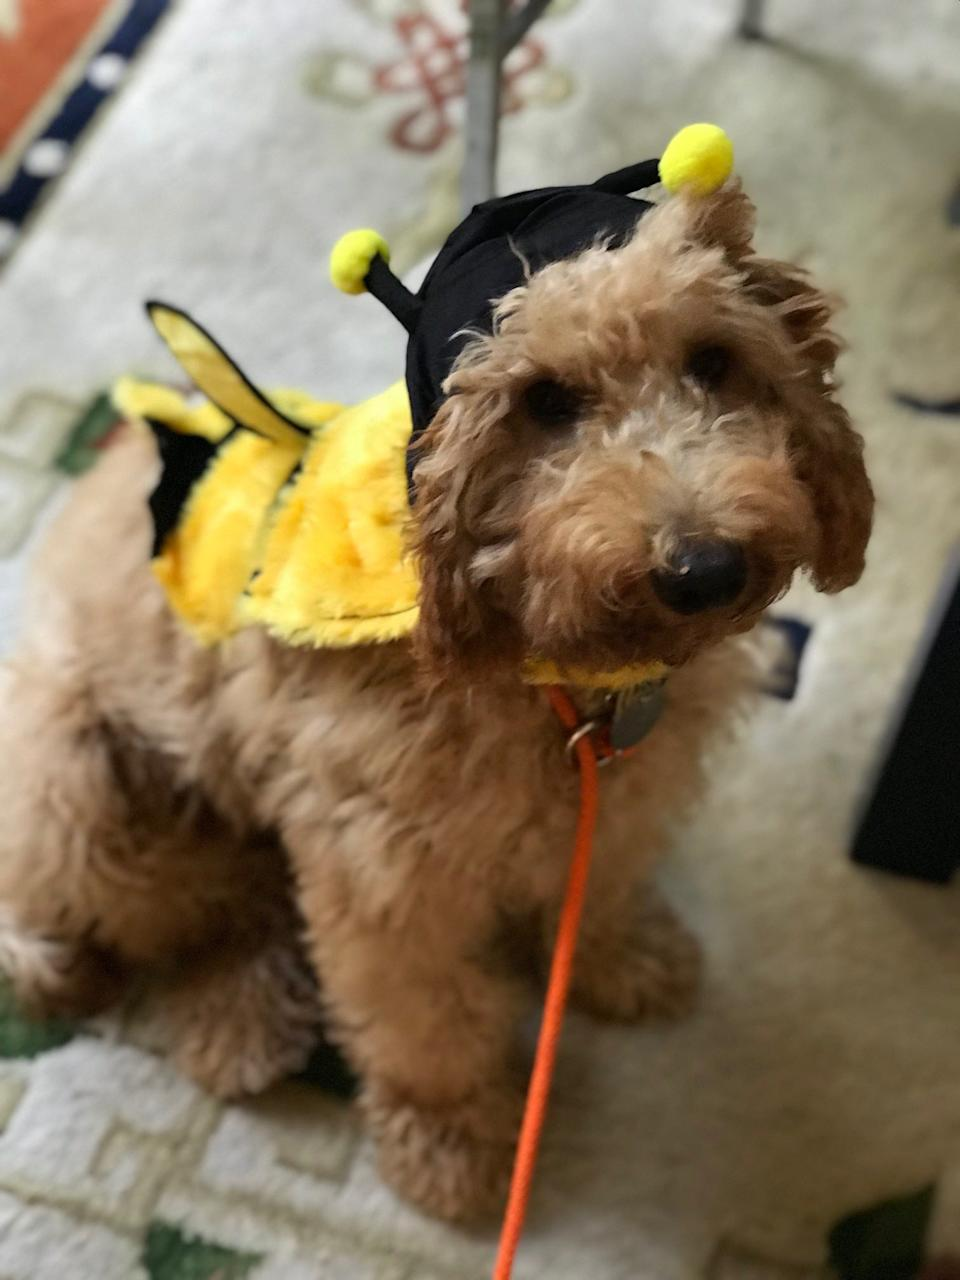 A bumblebee on a leash!